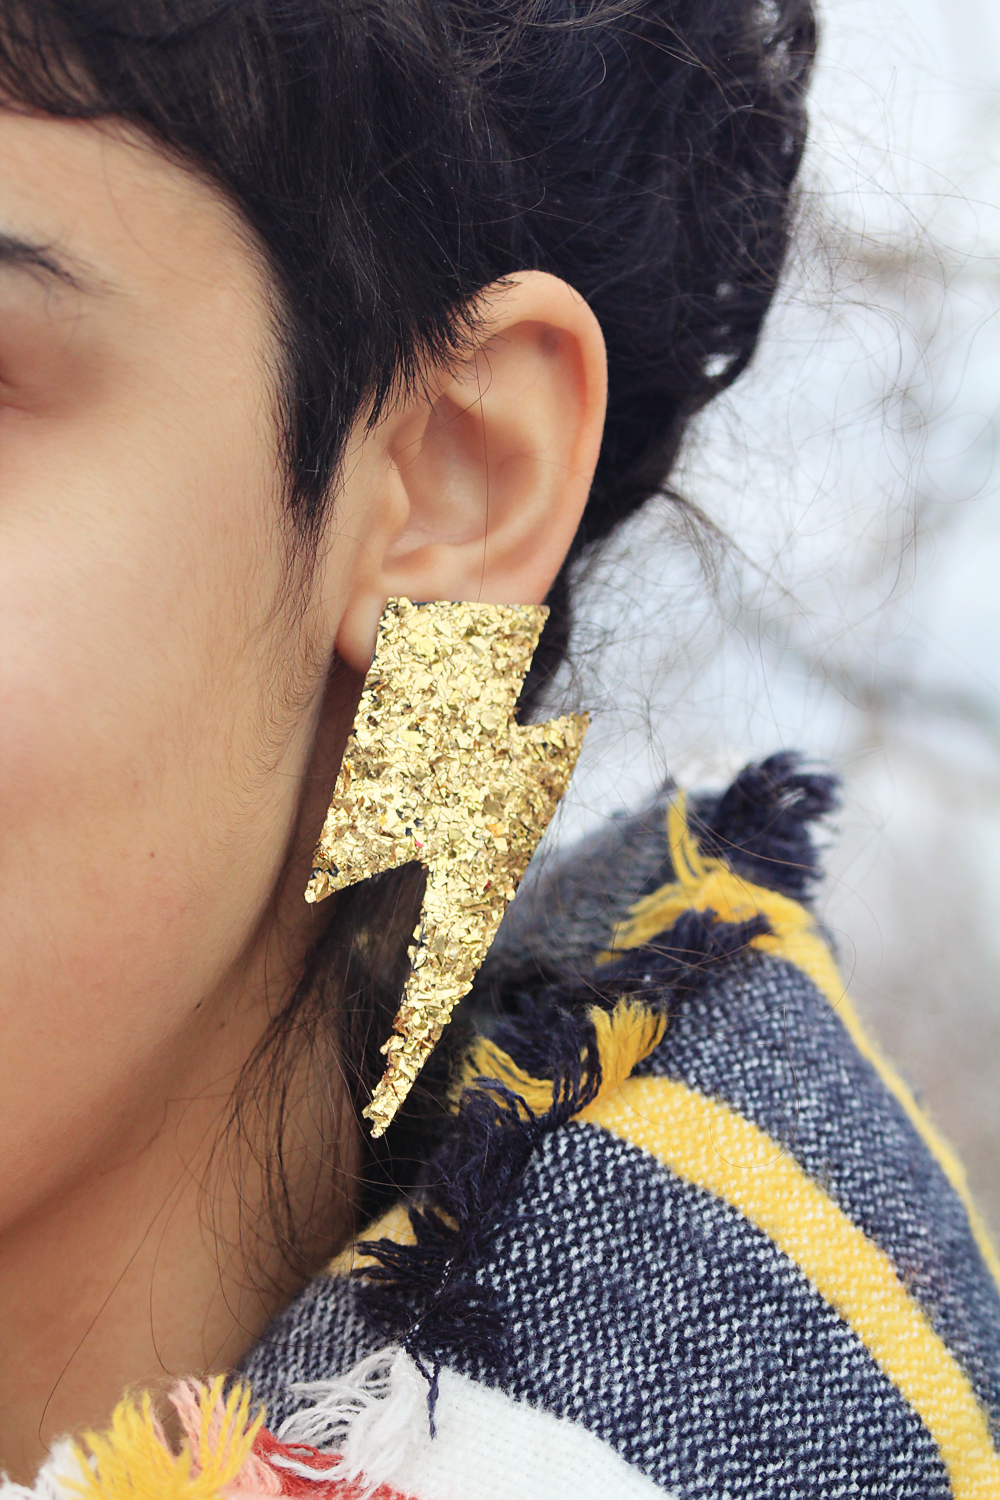 Bowie Lightning-Shaped Earrings with Glitter (and clip ons) | by In Whirl of Inspiration